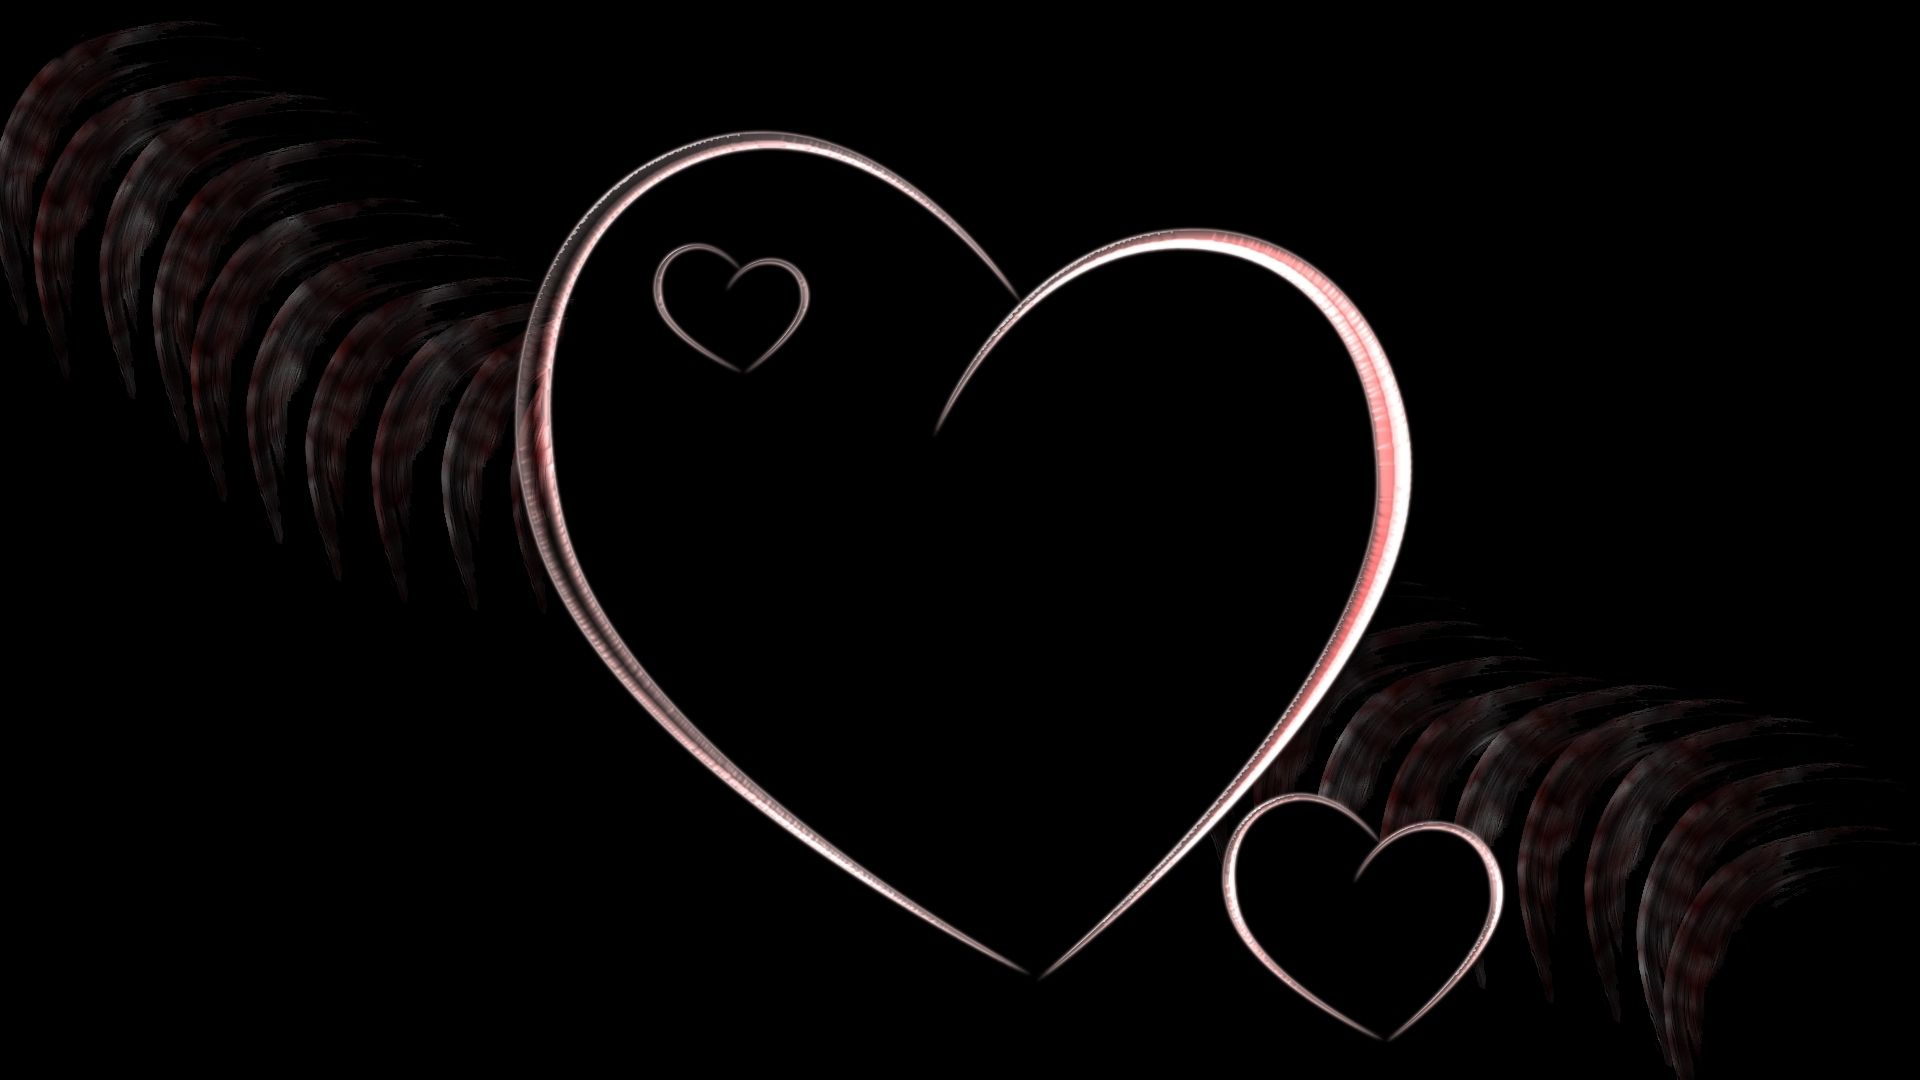 Black Love Heart Ahd Images Black Background Wallpaper Black Backgrounds Black Love Heart